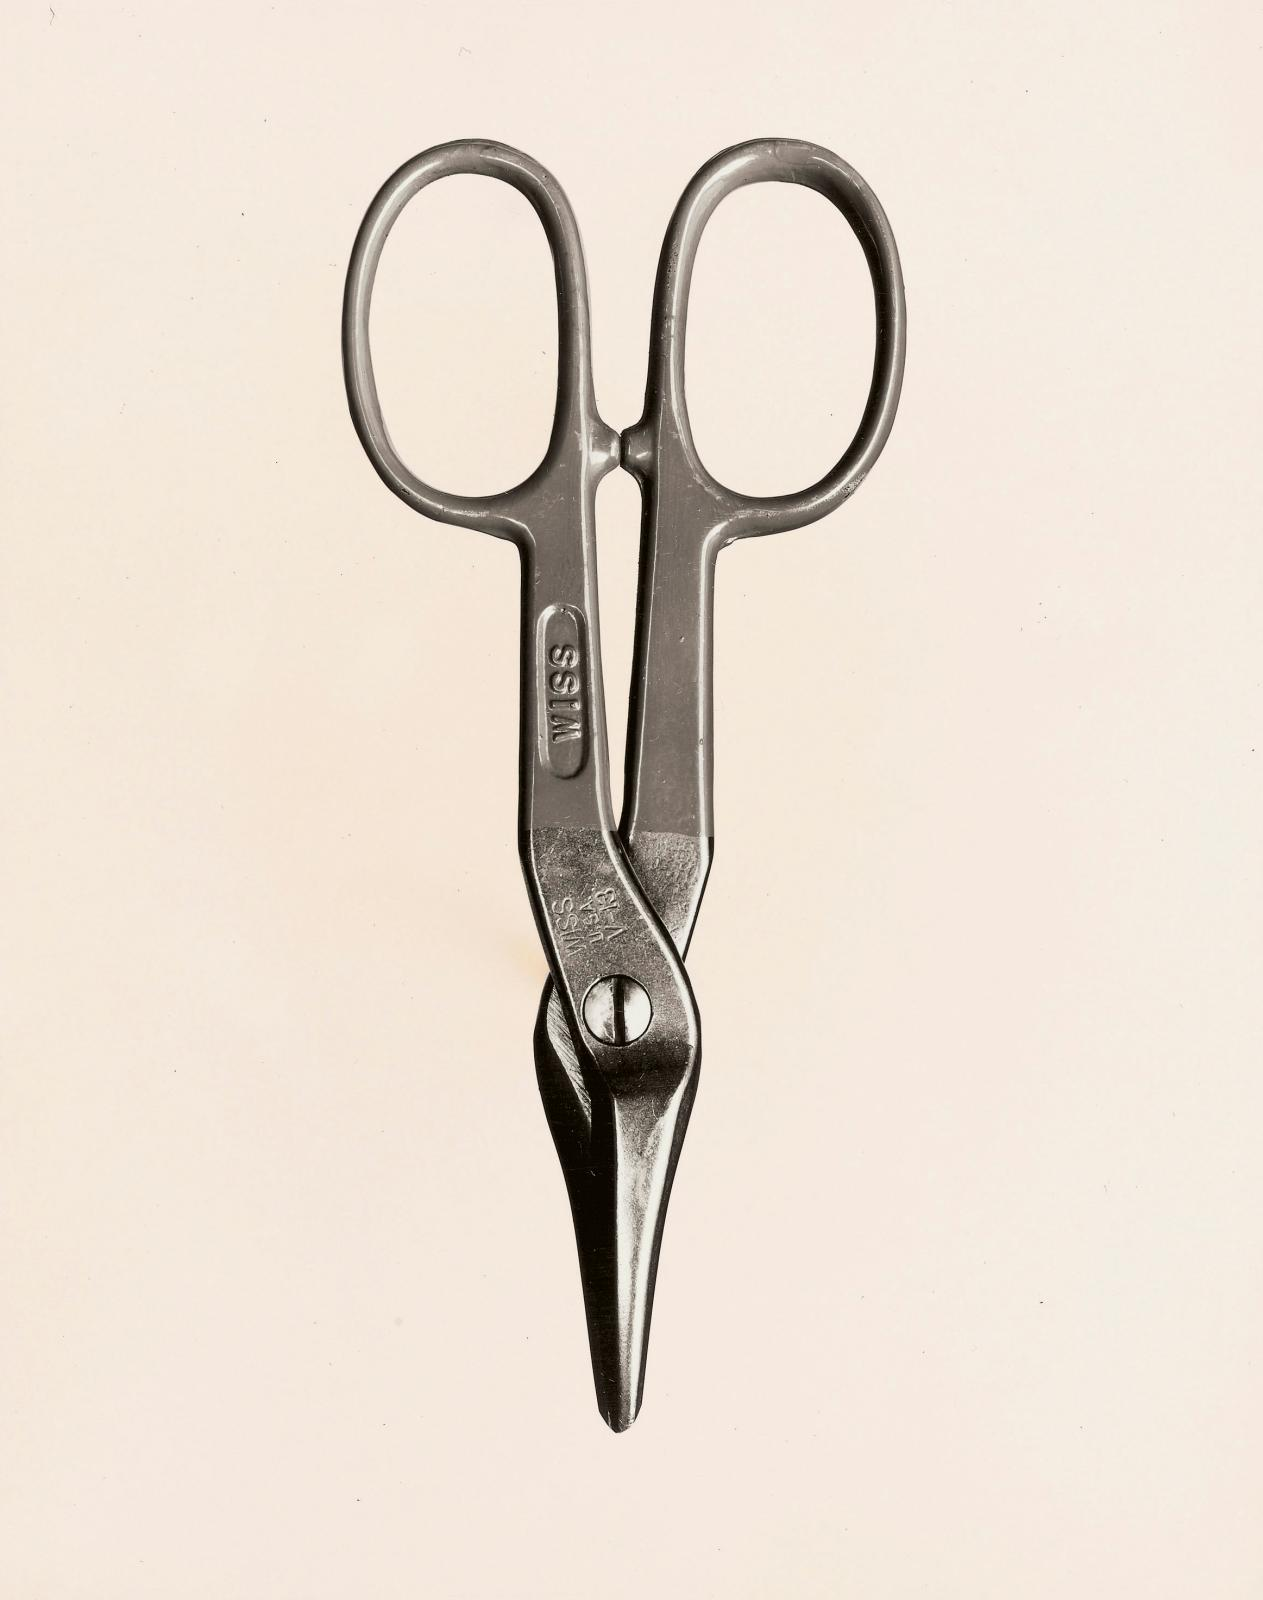 Walker Evans (1903-1975), Tin Snips by J. Wiss and Sons Co., $1.85, 1955, gelatin silver print, 25.2 x 20.3 cm, The J. Paul Getty Museum, Los Angeles.